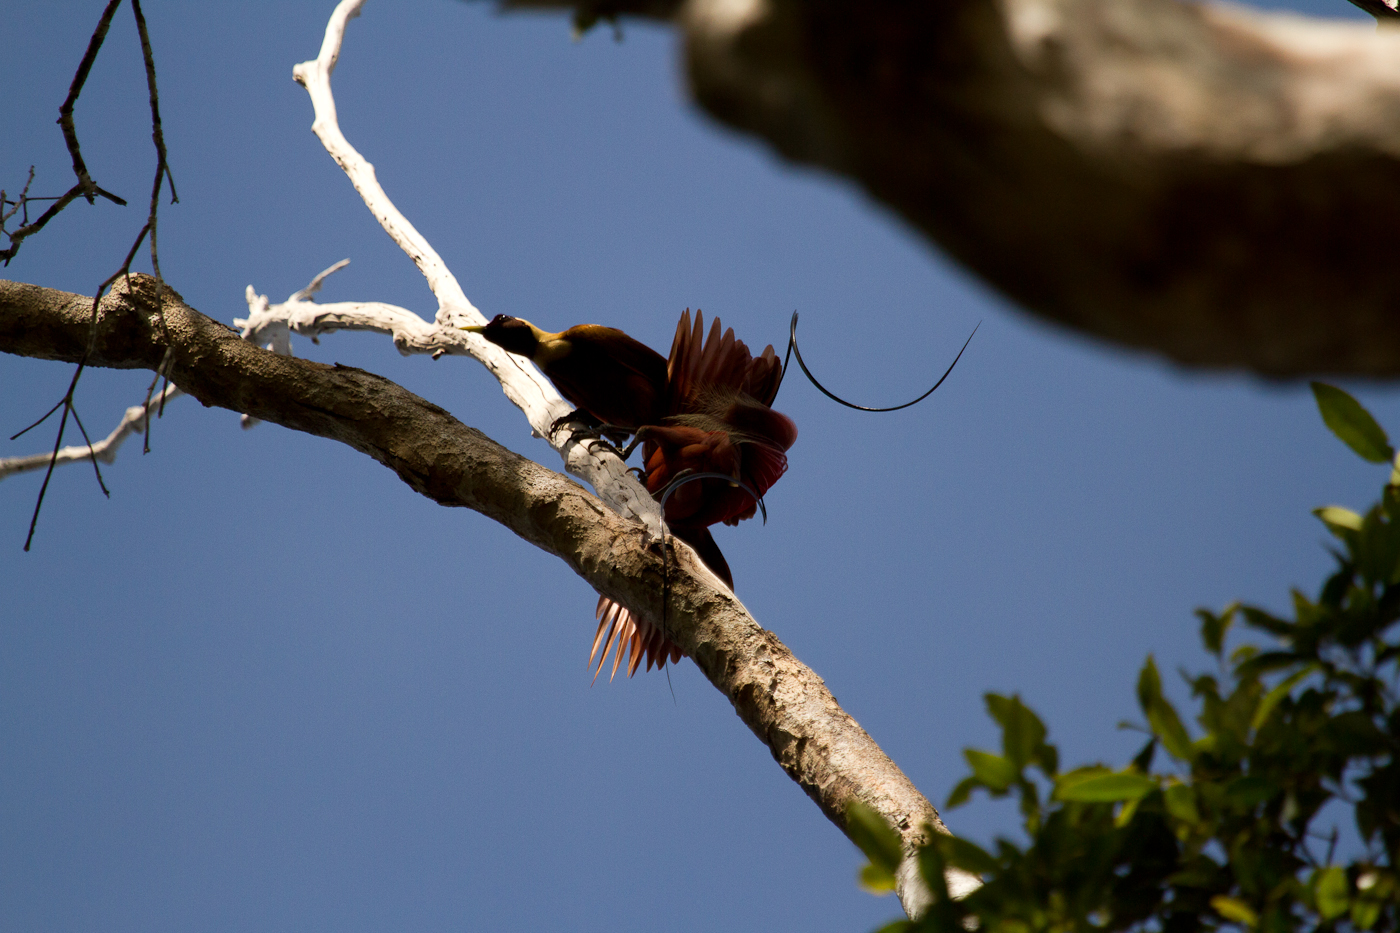 Get that female! A Red Bird of Paradise swoops in to start his courting dance.